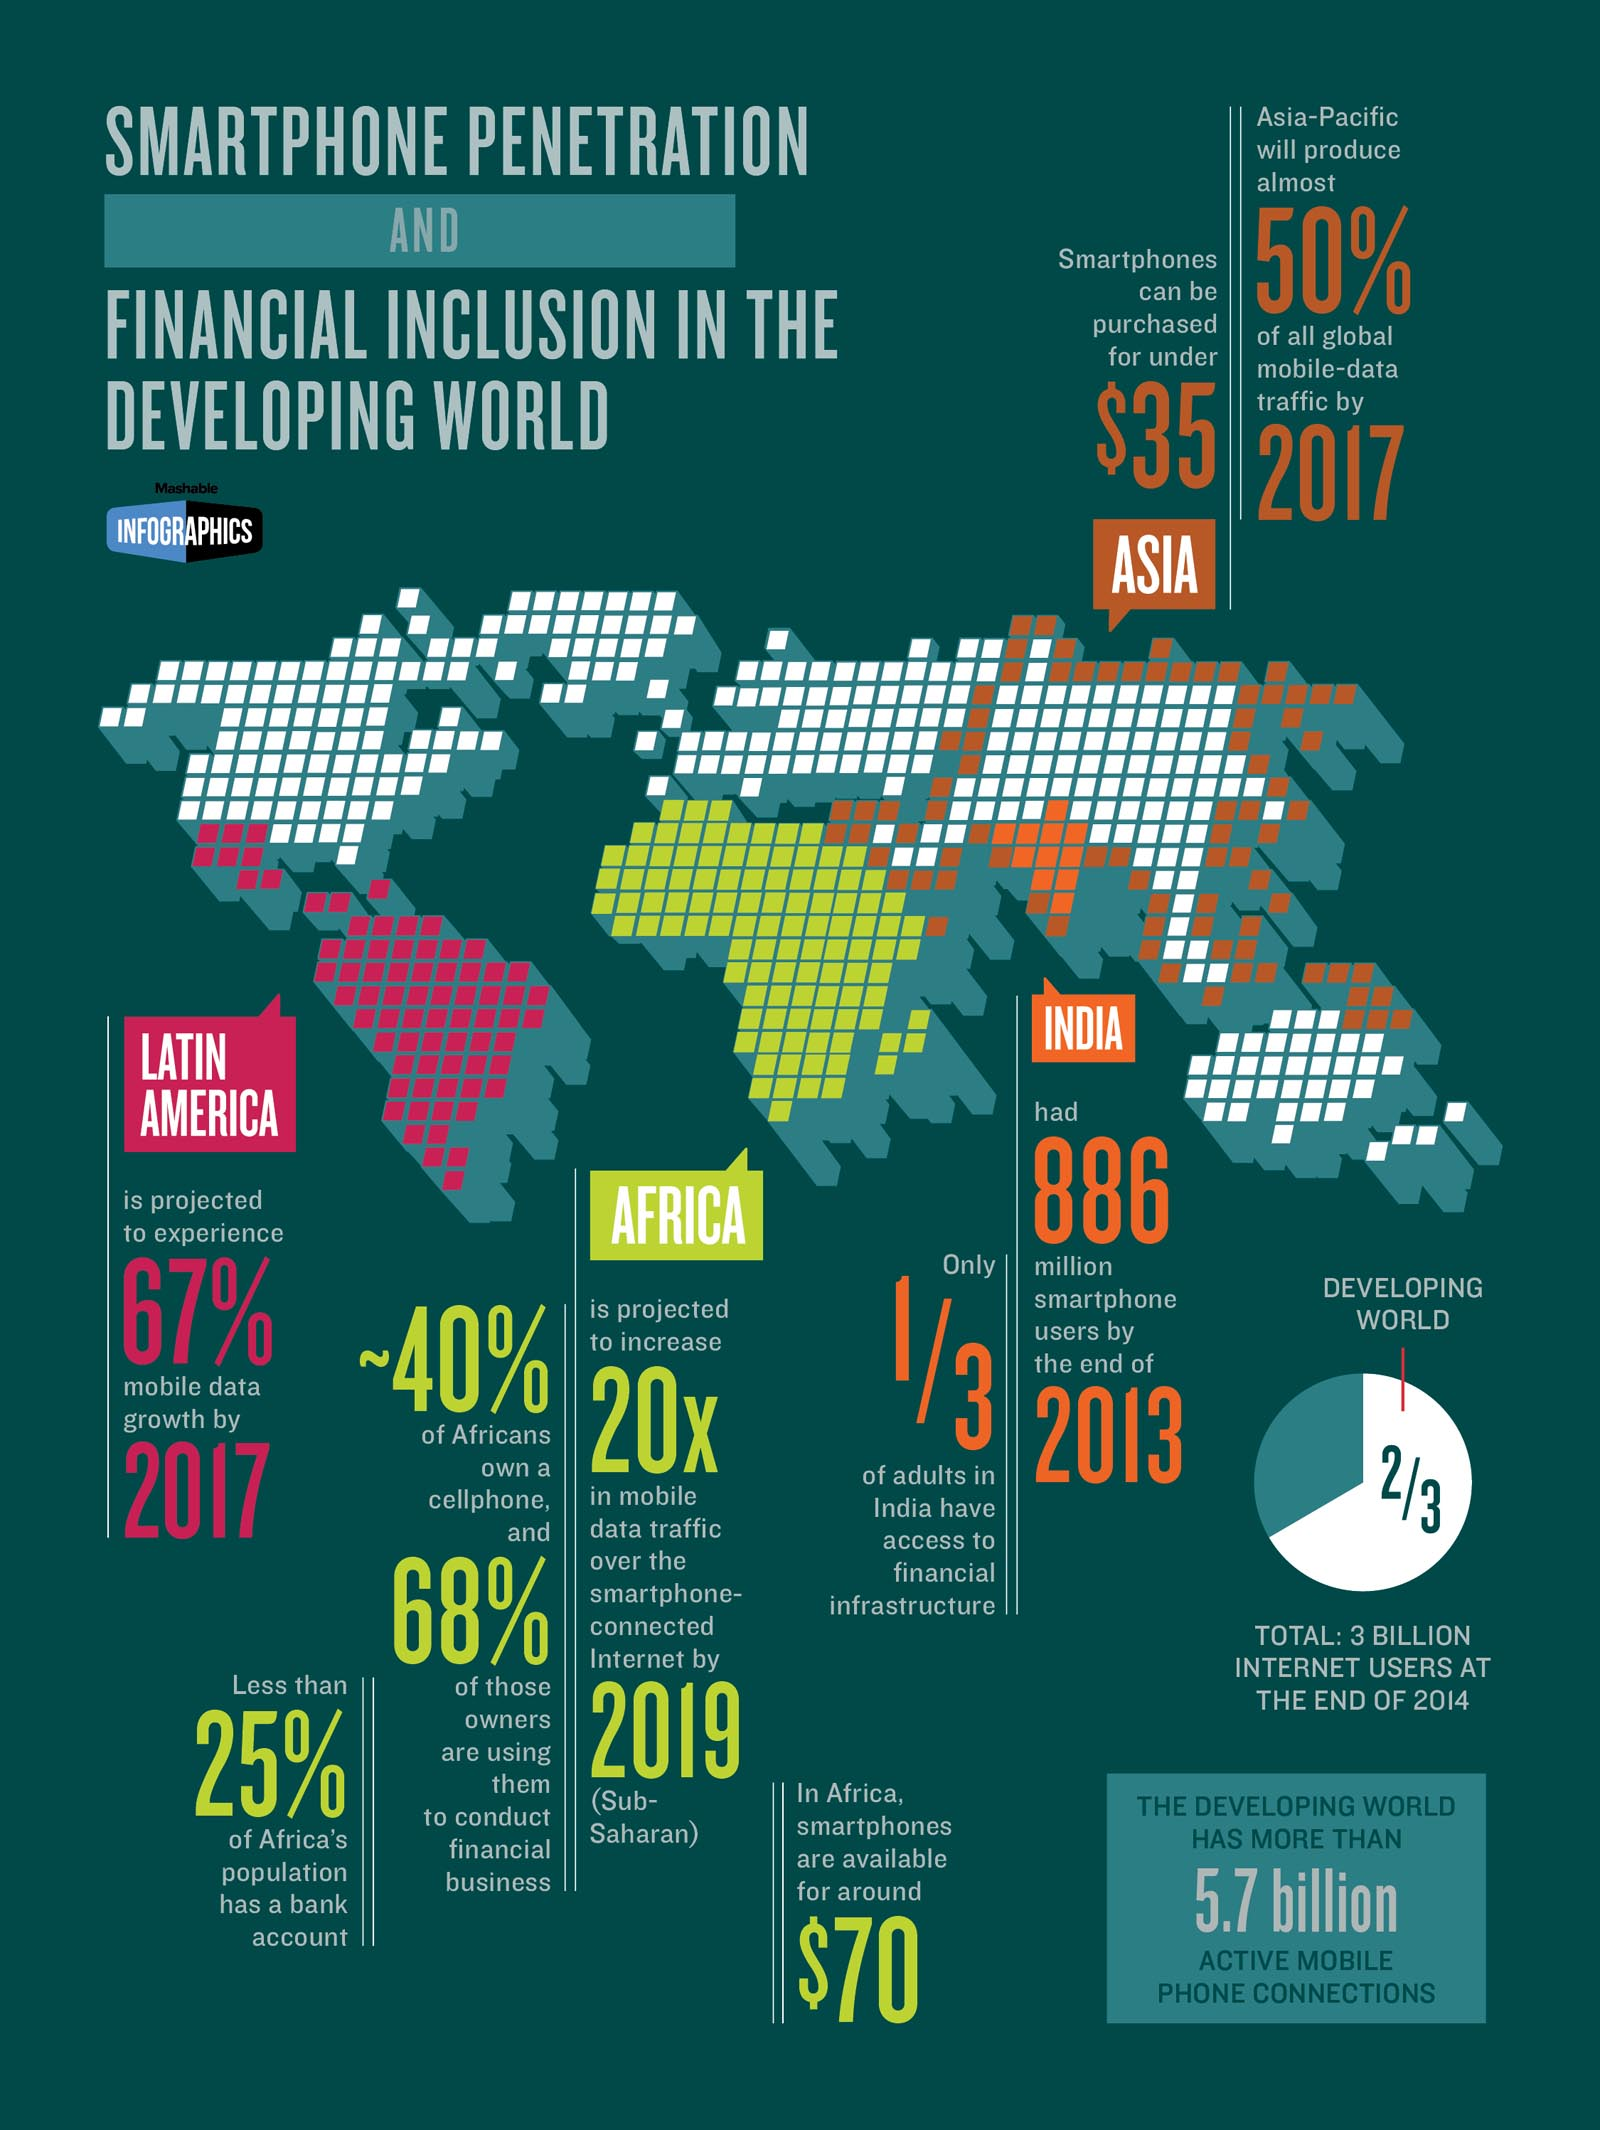 Smartphone penetration and Financial Inclusion in the Developing World